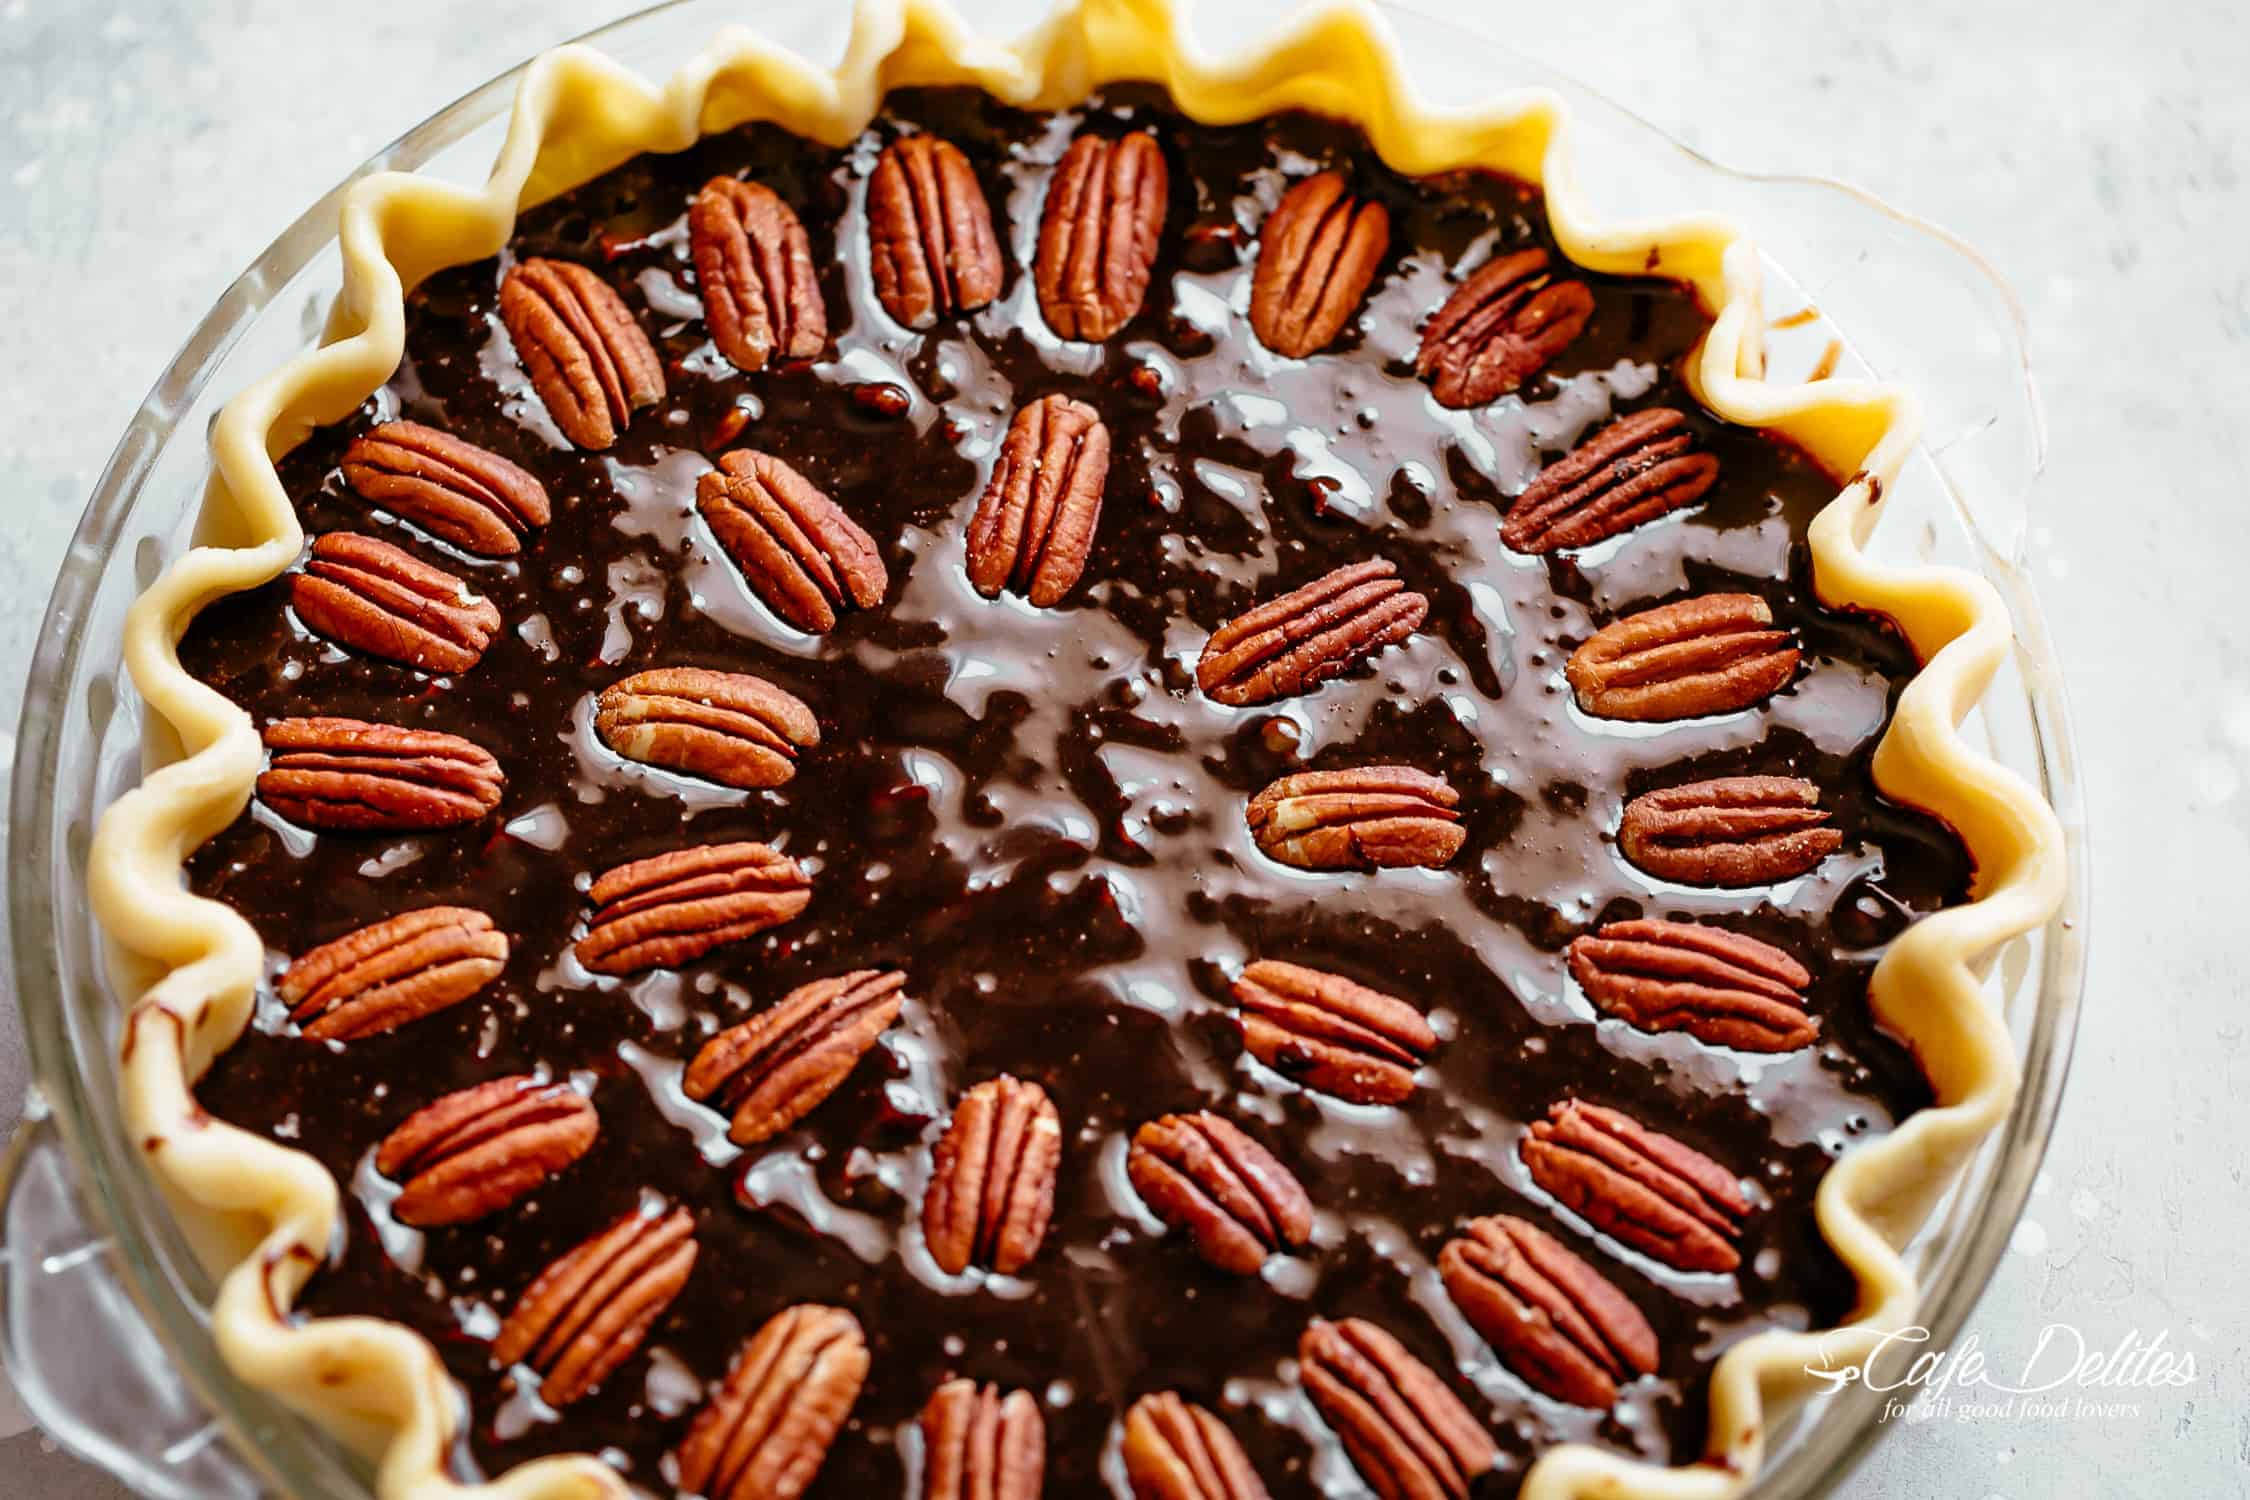 Chocolate pecan pie for Thanksgiving